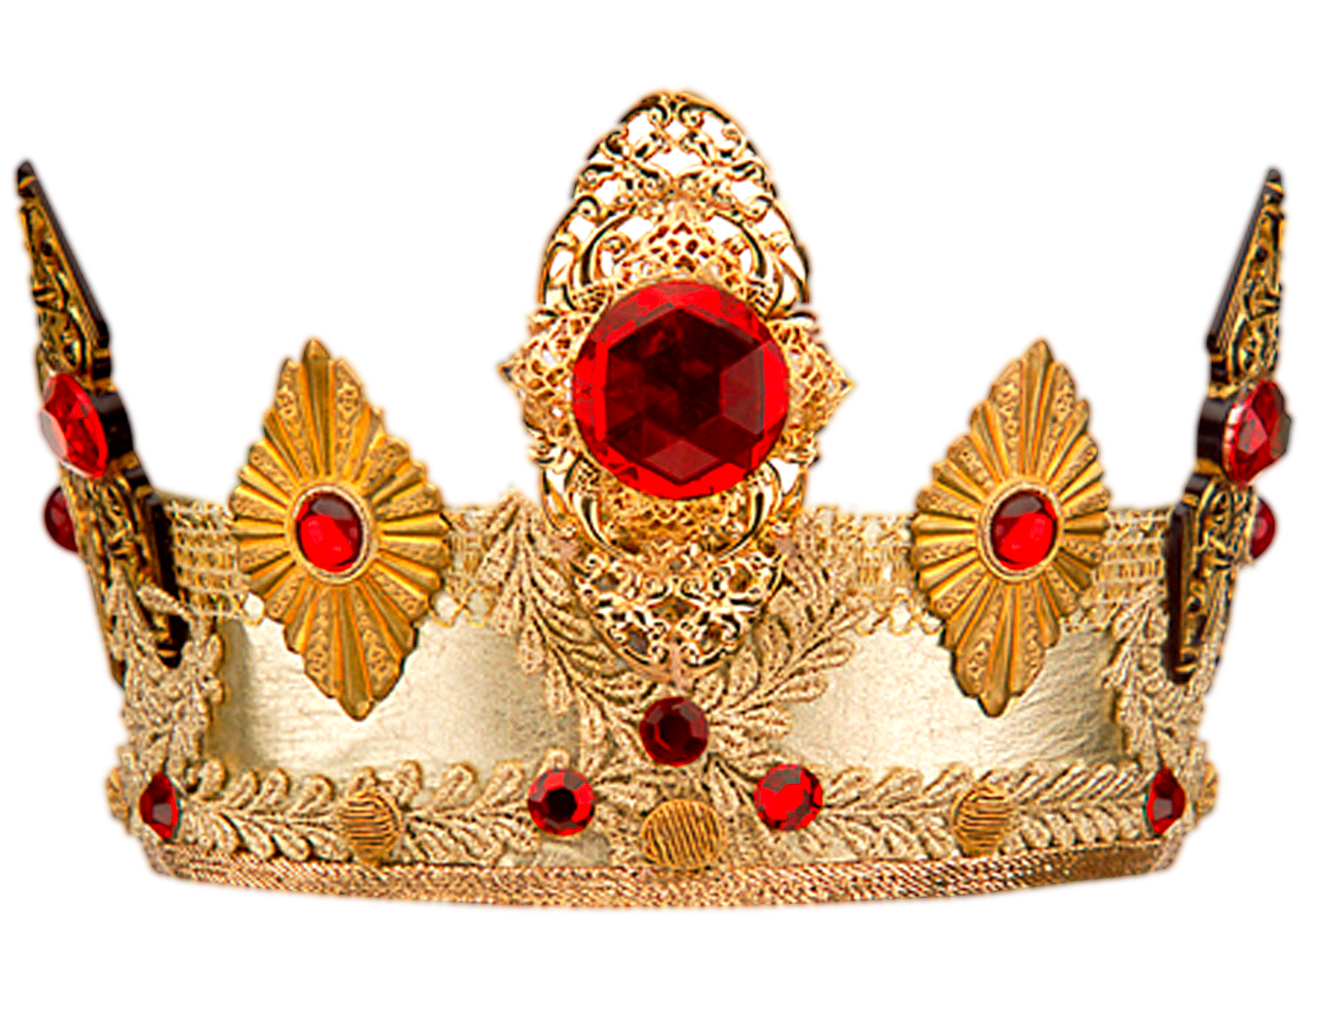 King Crown png image. Resolut